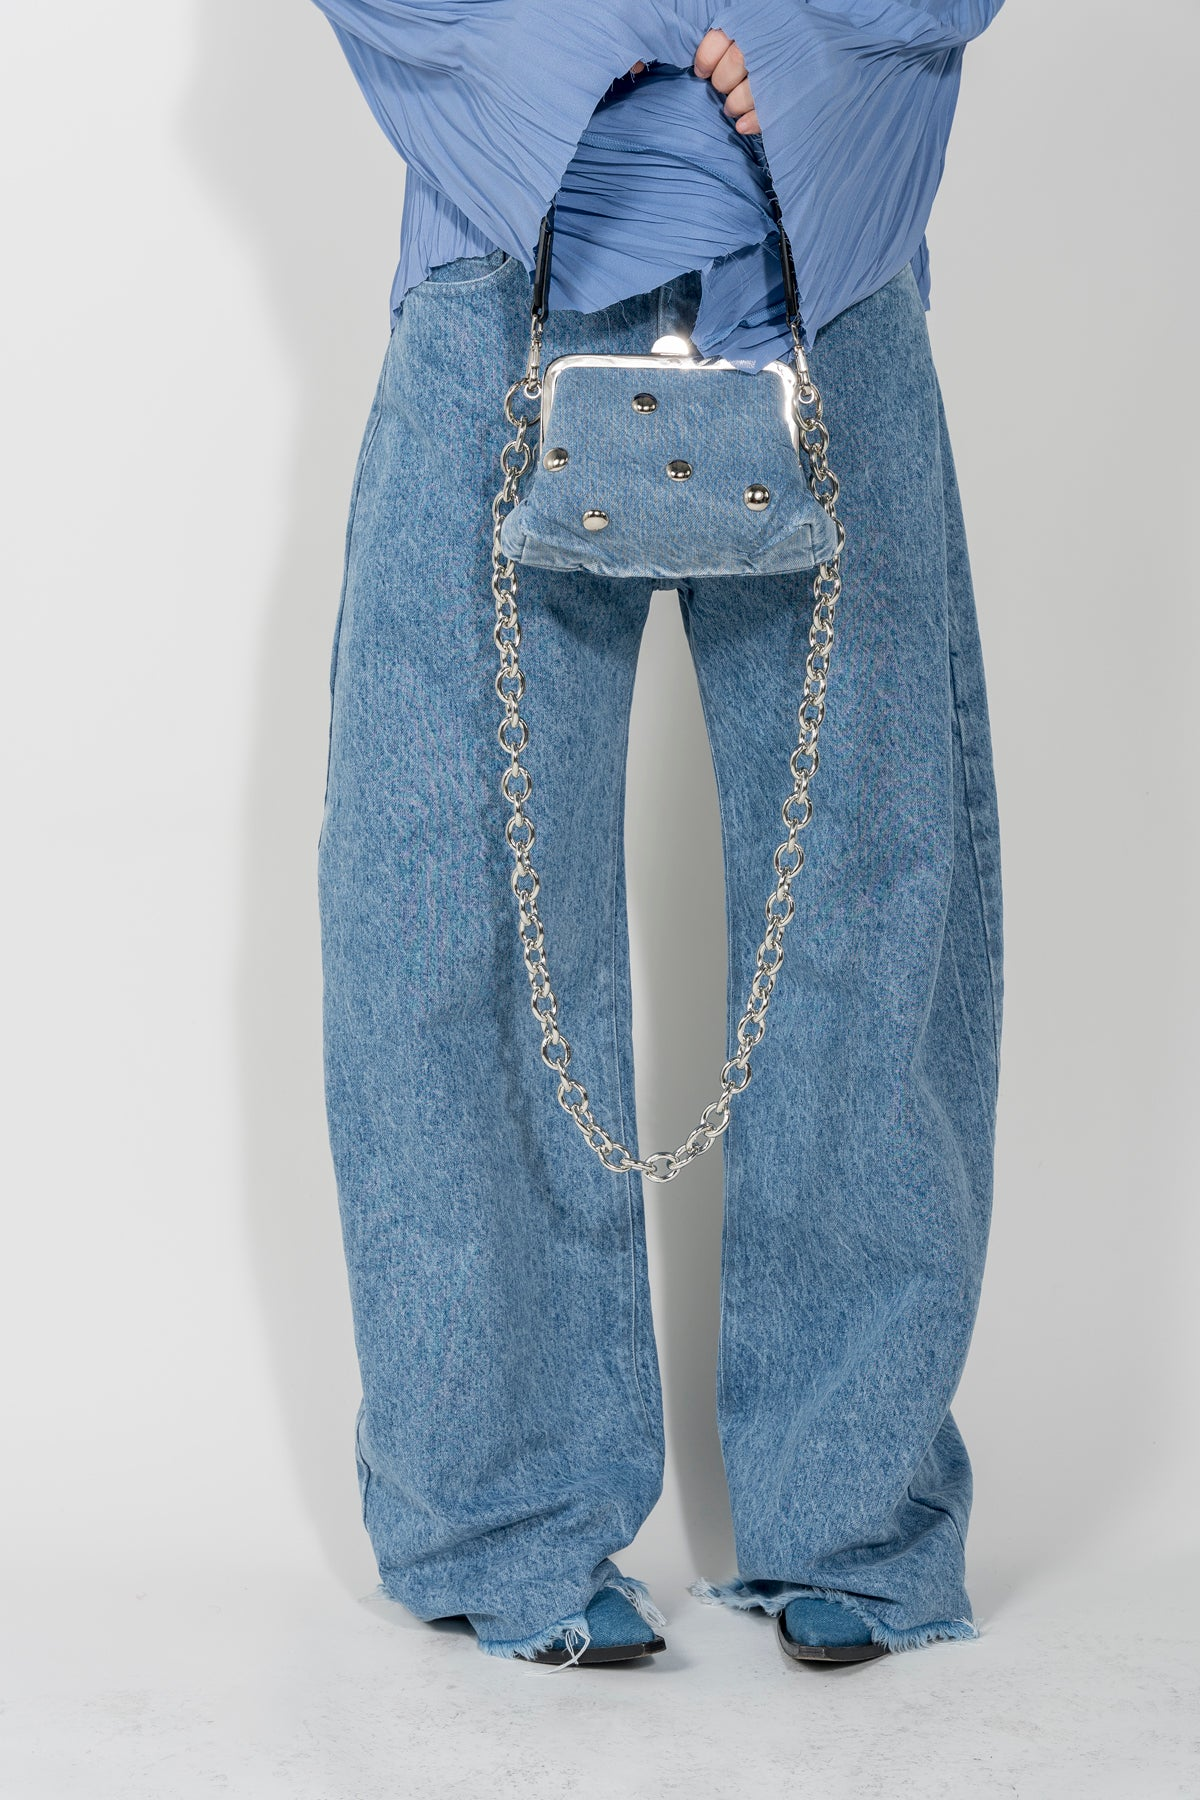 STUDDED DENIM BAG MARQUES ALMEIDA